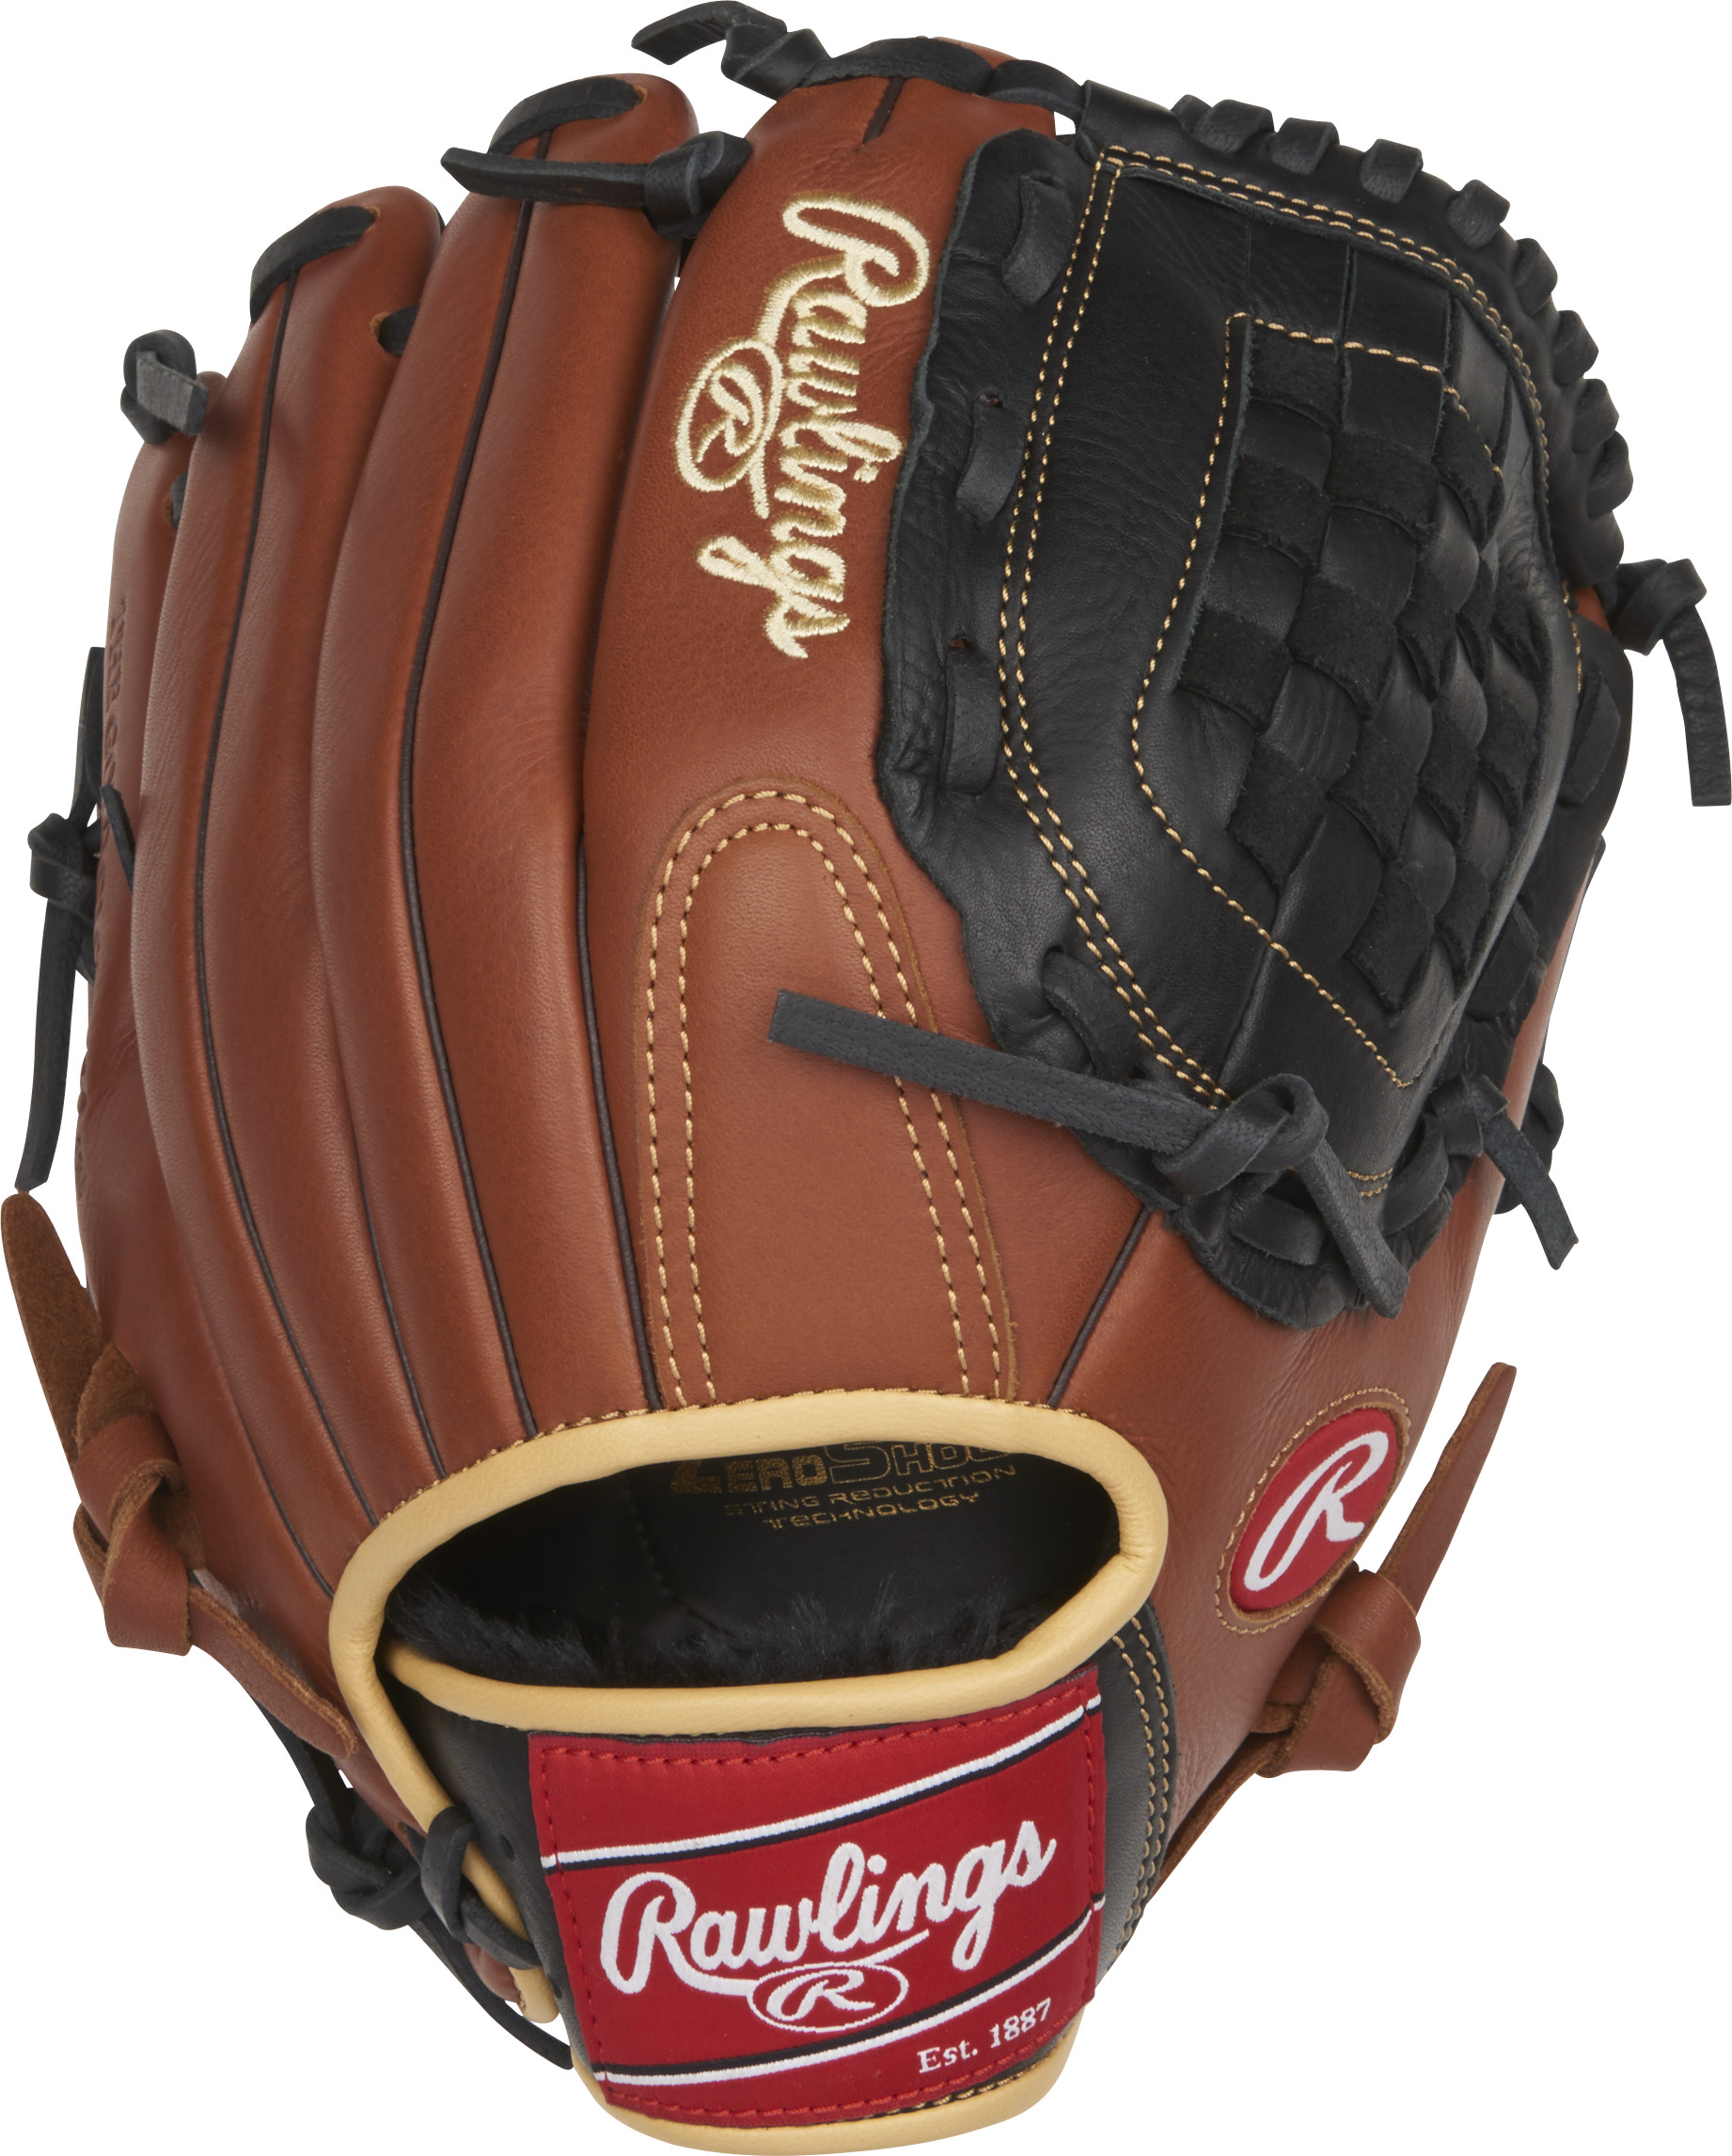 http://www.bestbatdeals.com/images/gloves/rawlings/S1200B-2.jpg